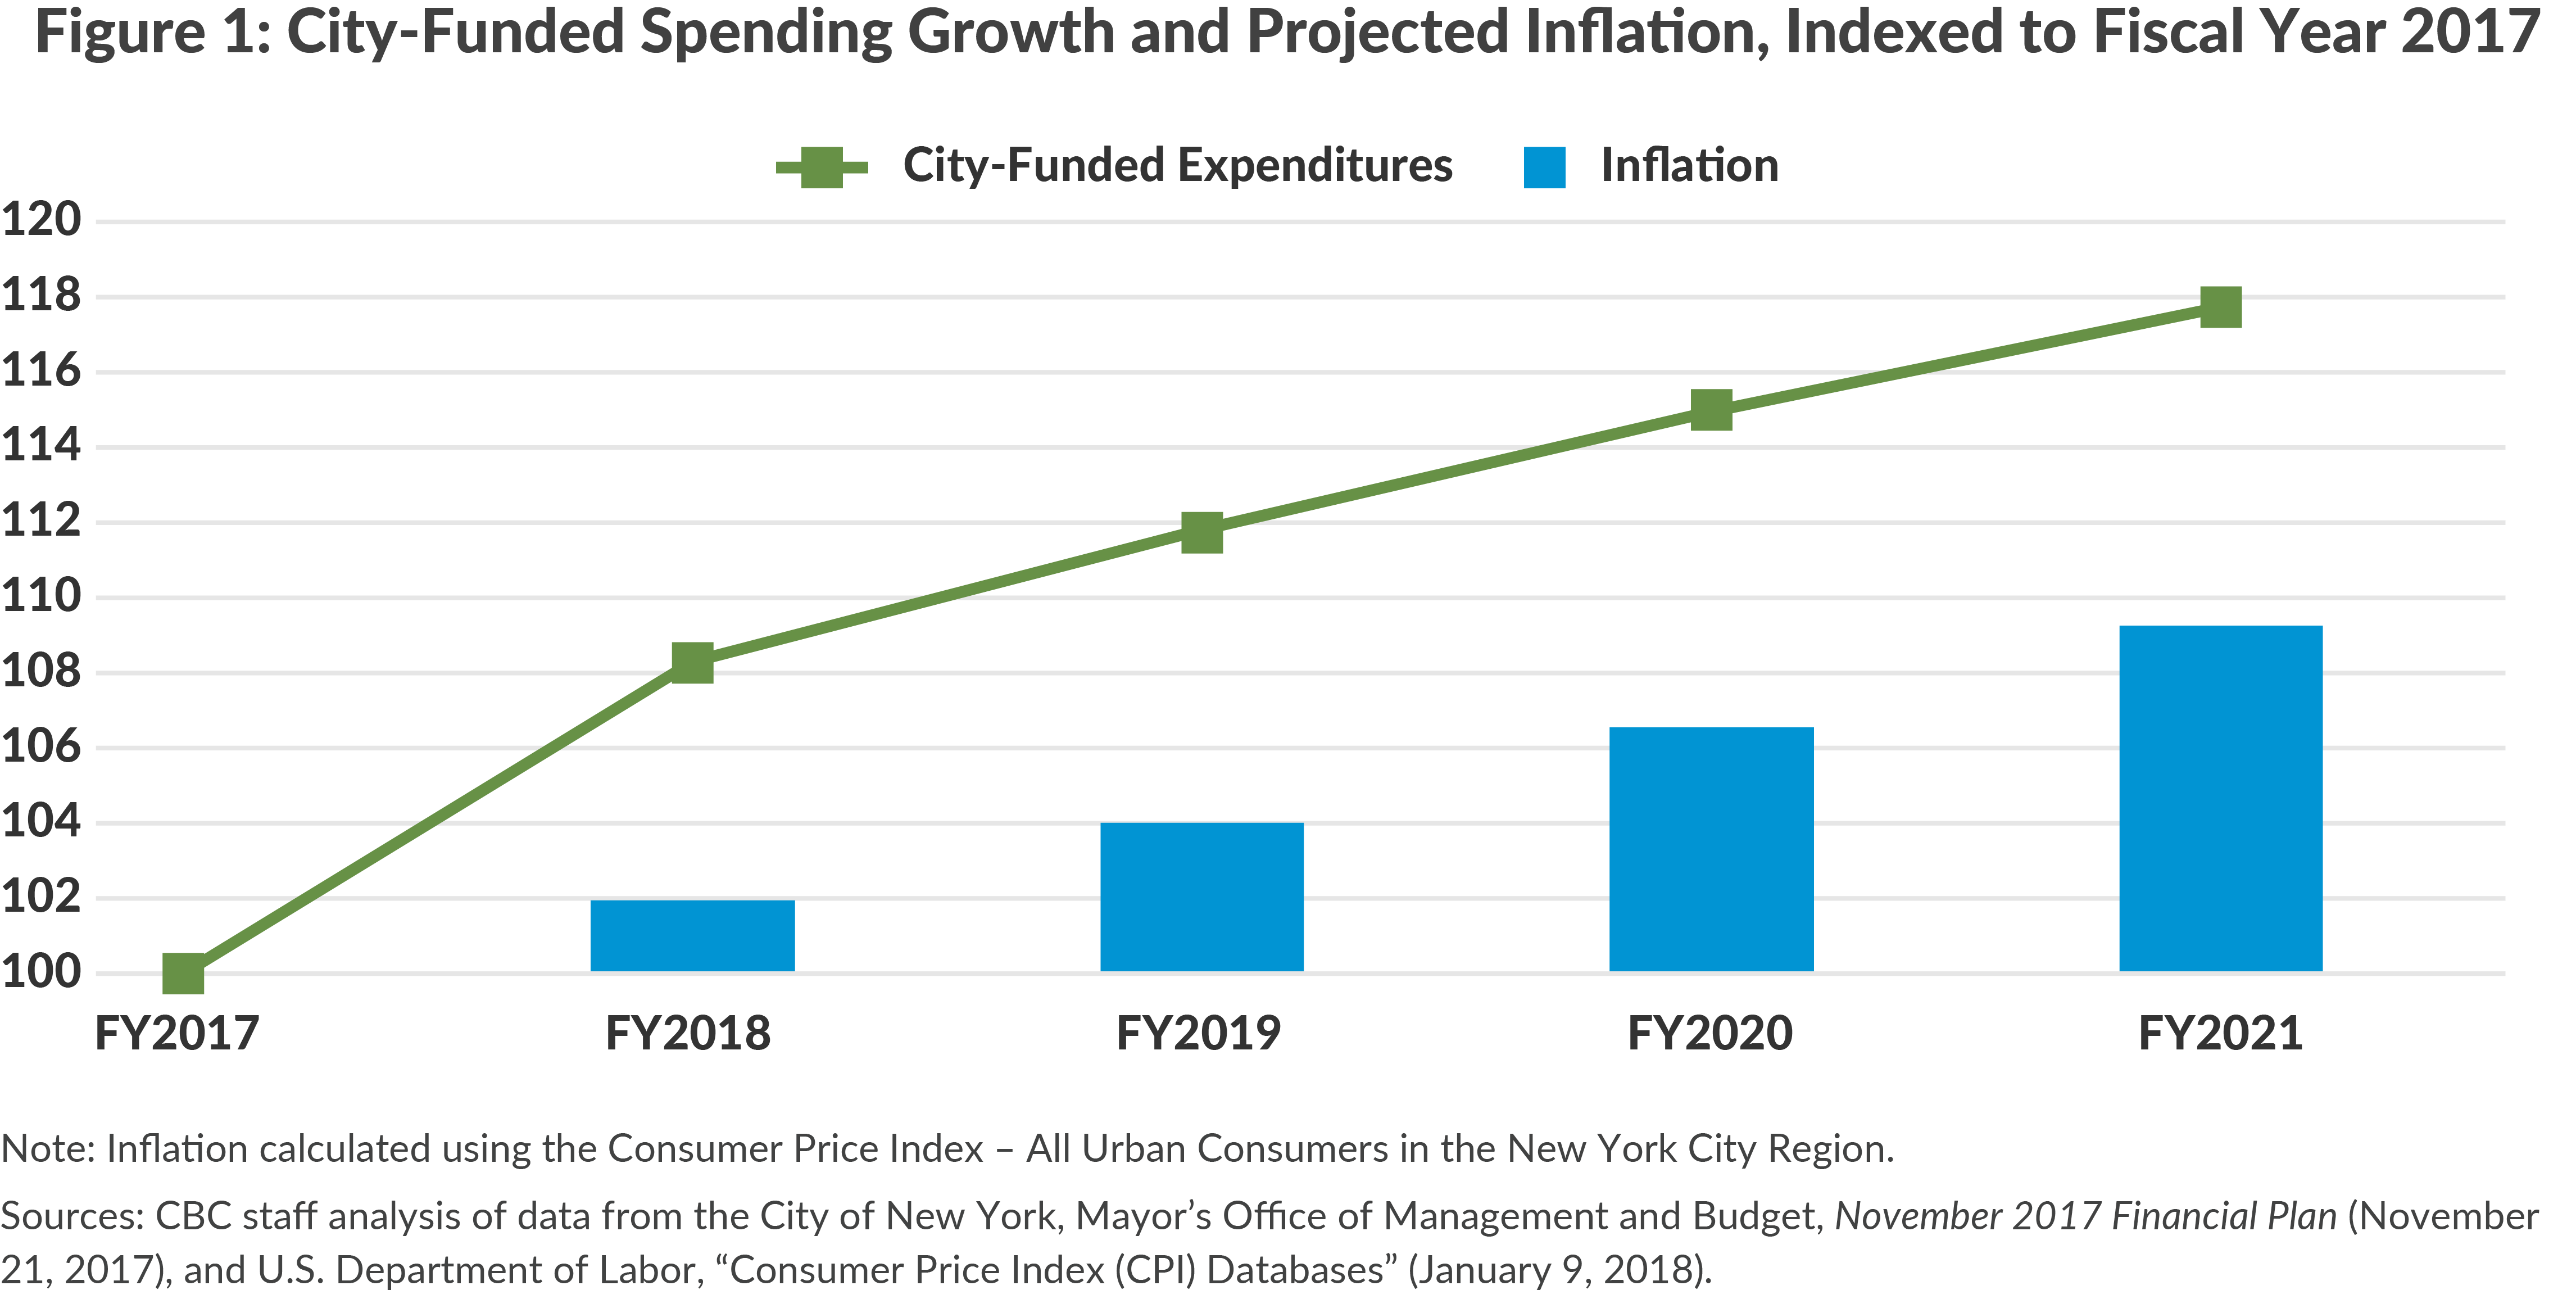 Figure 1: City-Funded Spending Growth and Projected Inflation, Indexed to Fiscal Year 2017